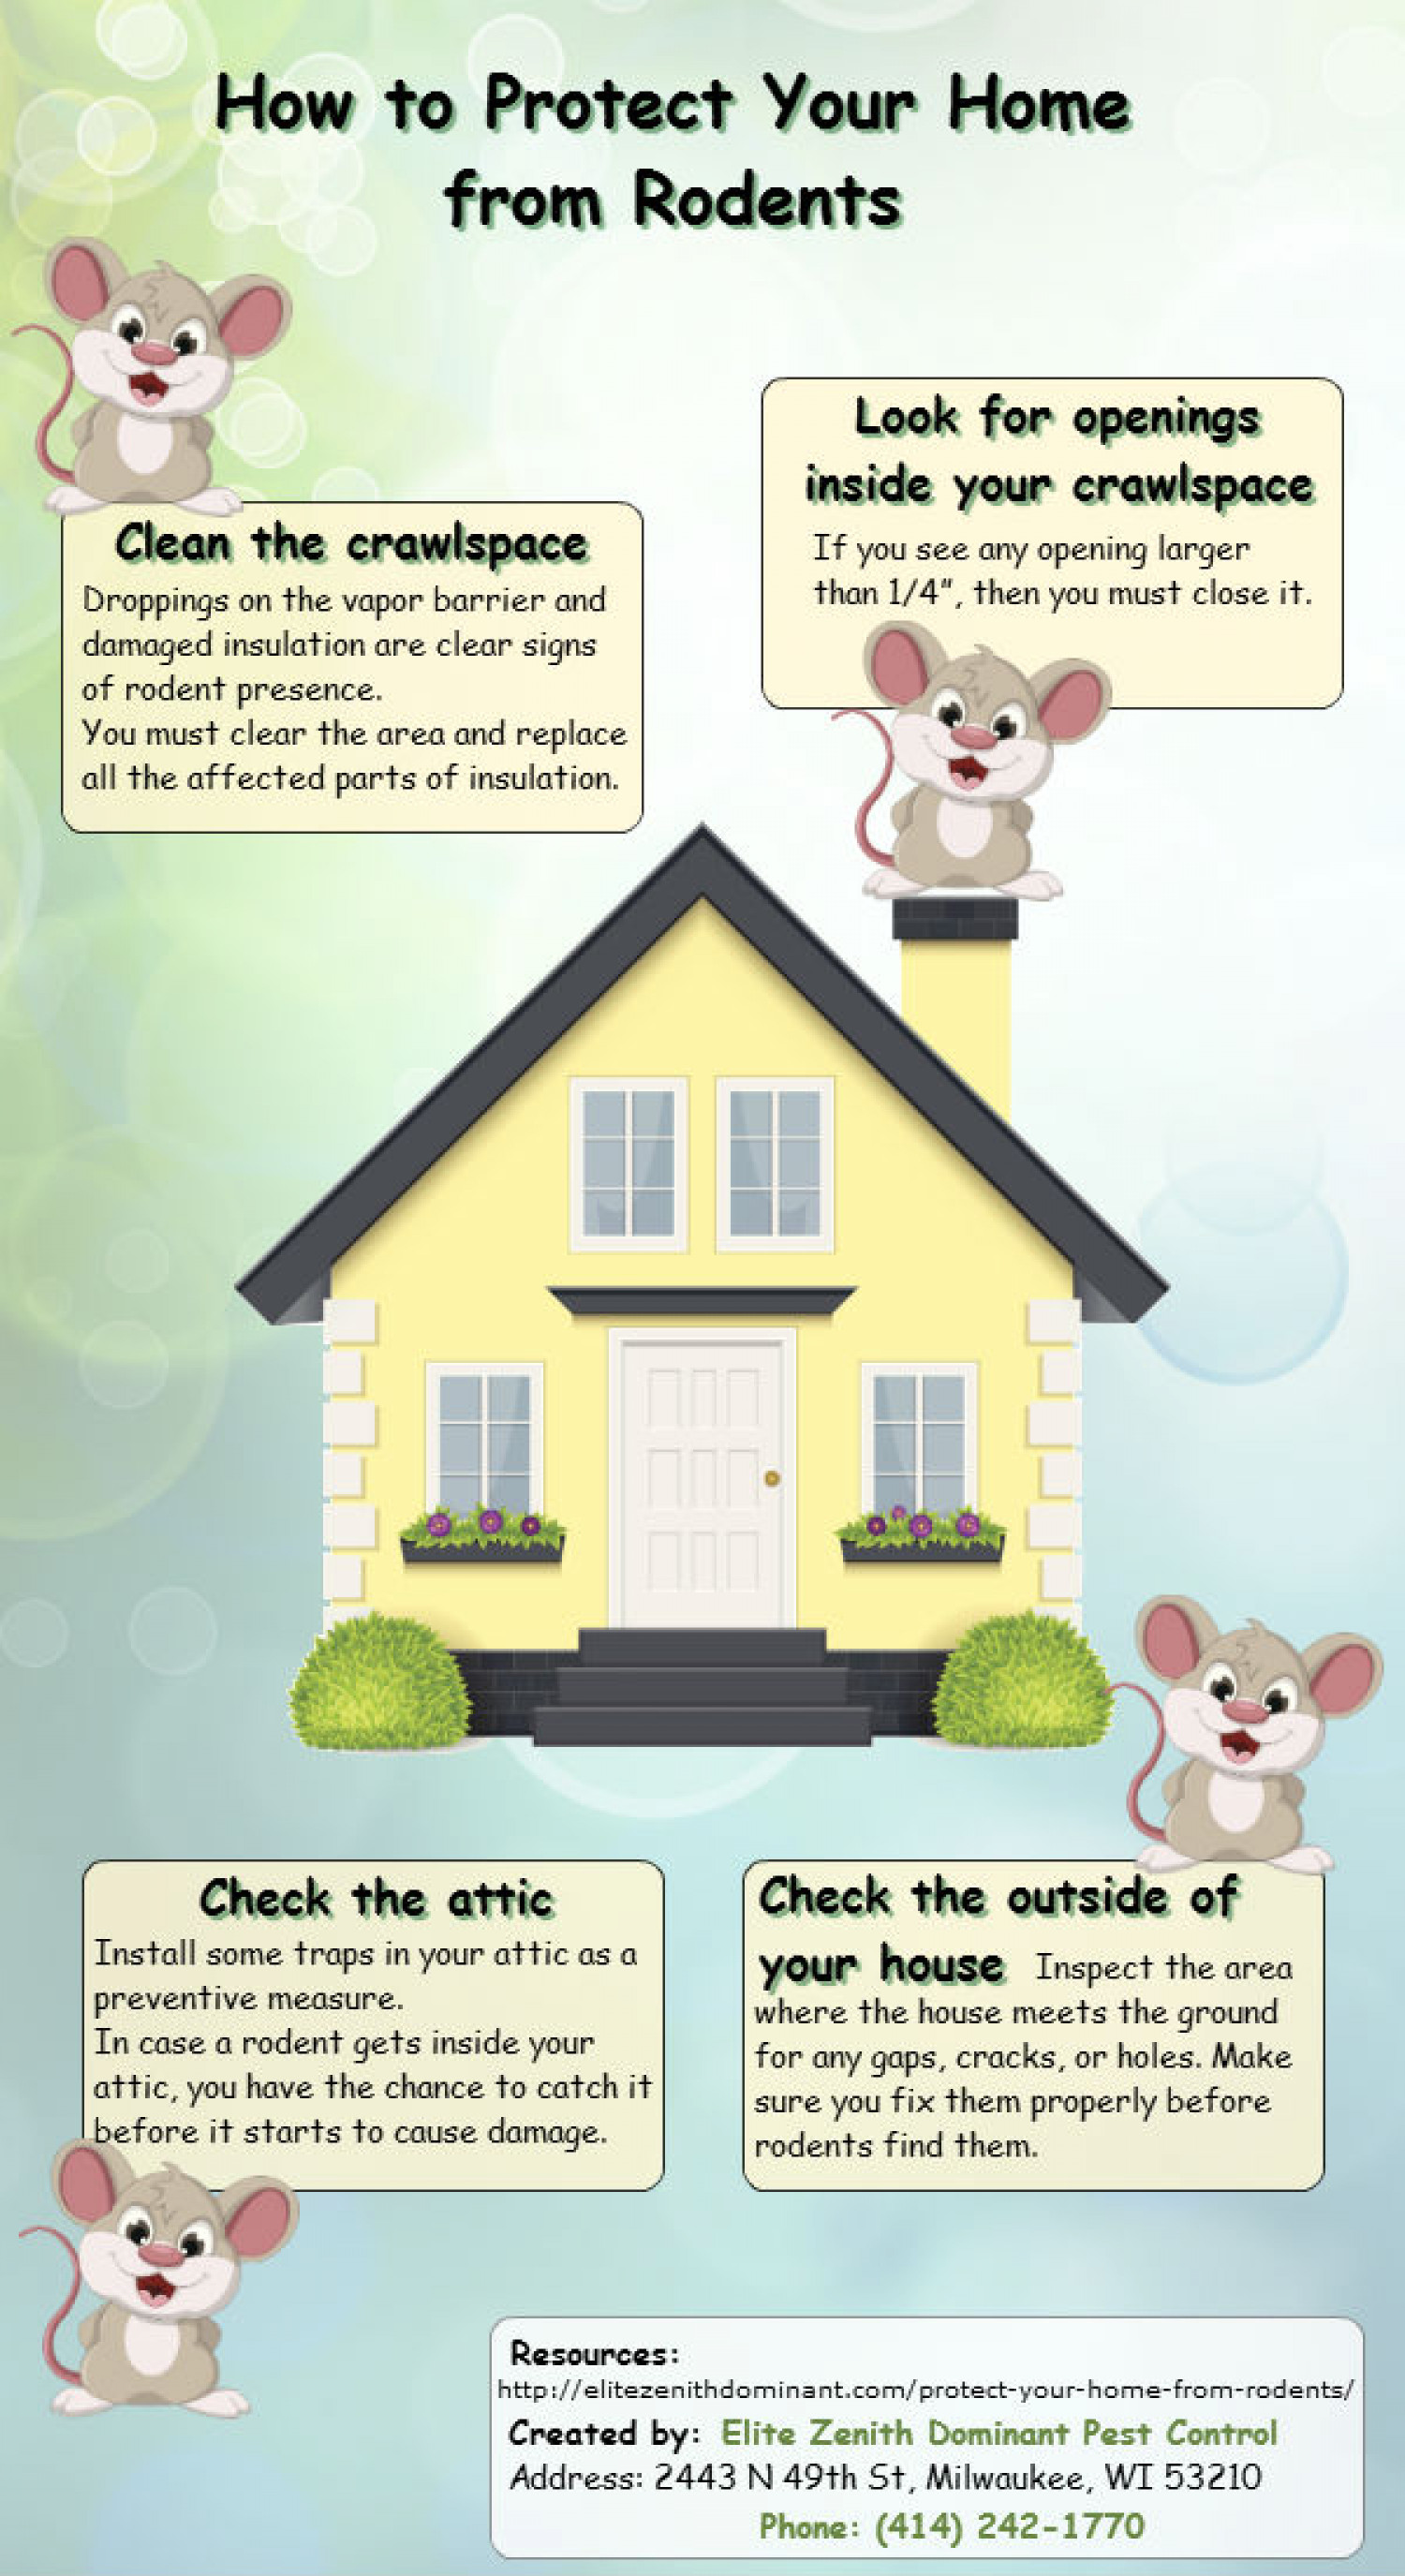 How to Protect Your Home From Rodents Infographic